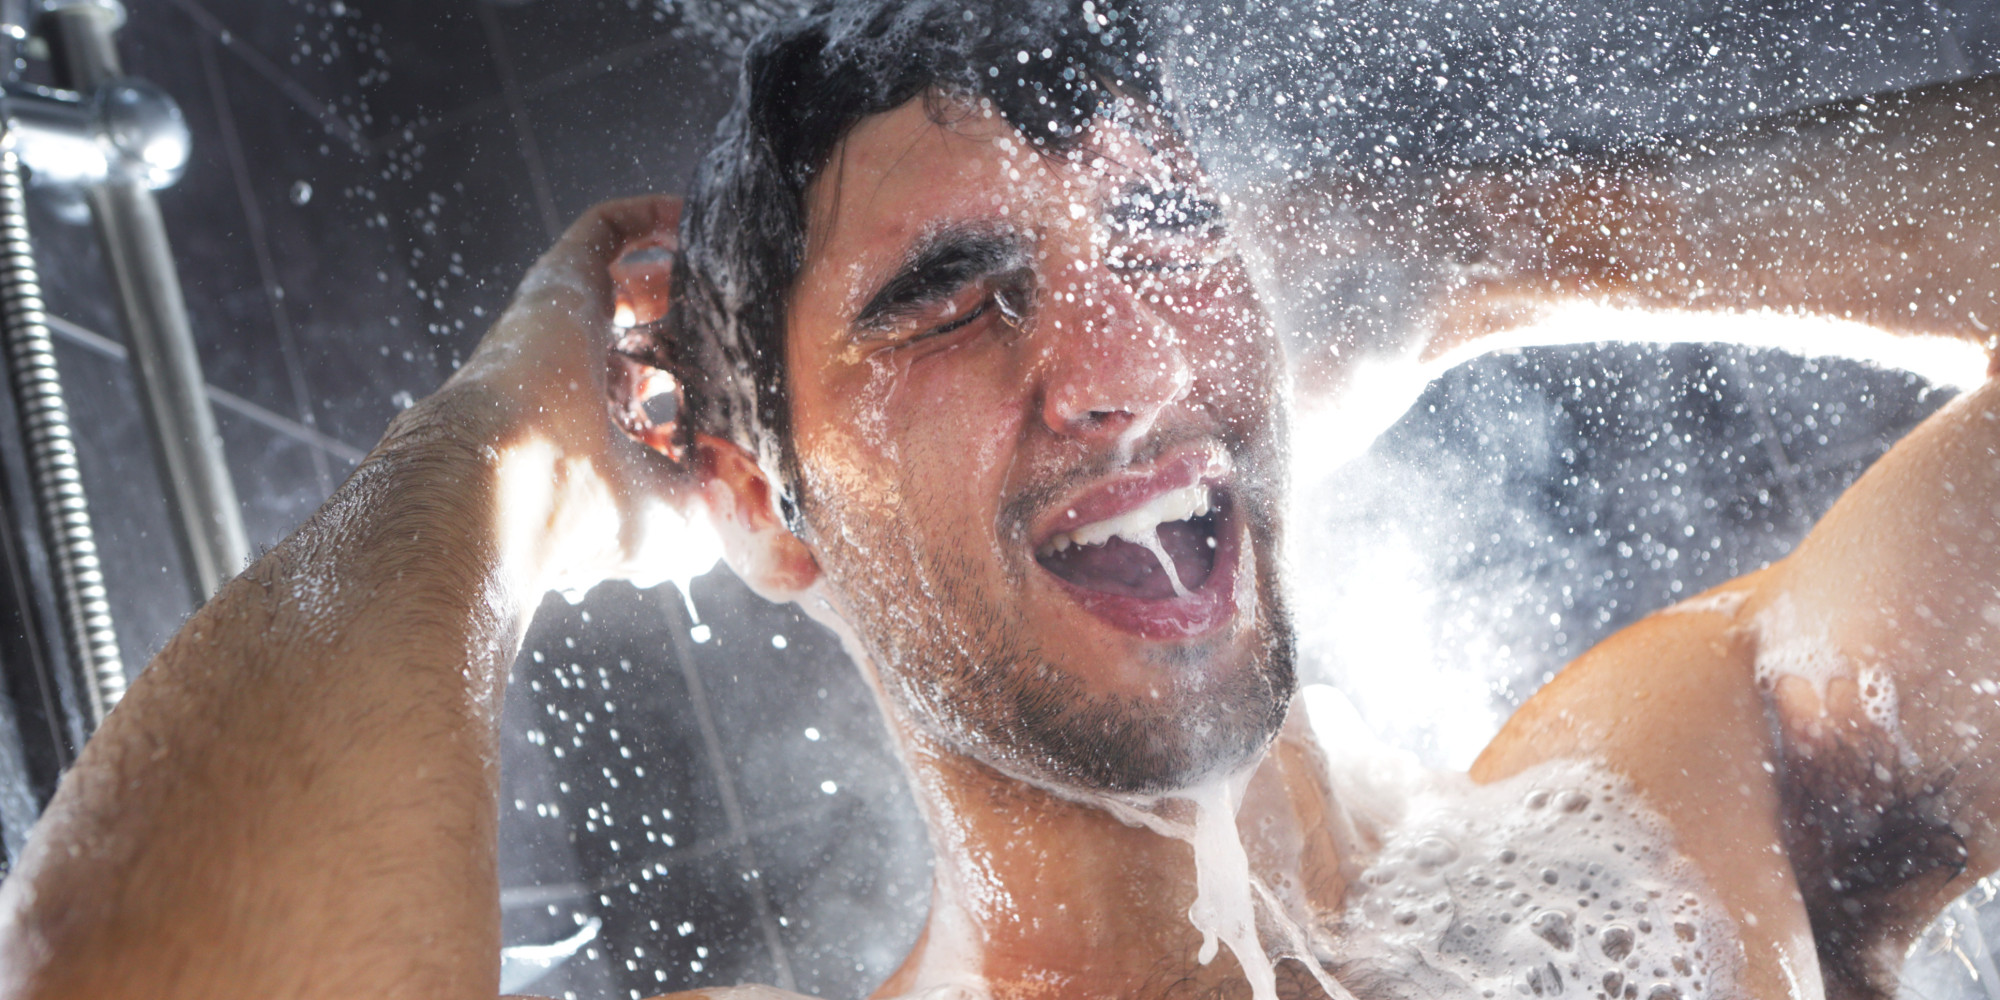 Man in shower, rinsing shampoo from hair